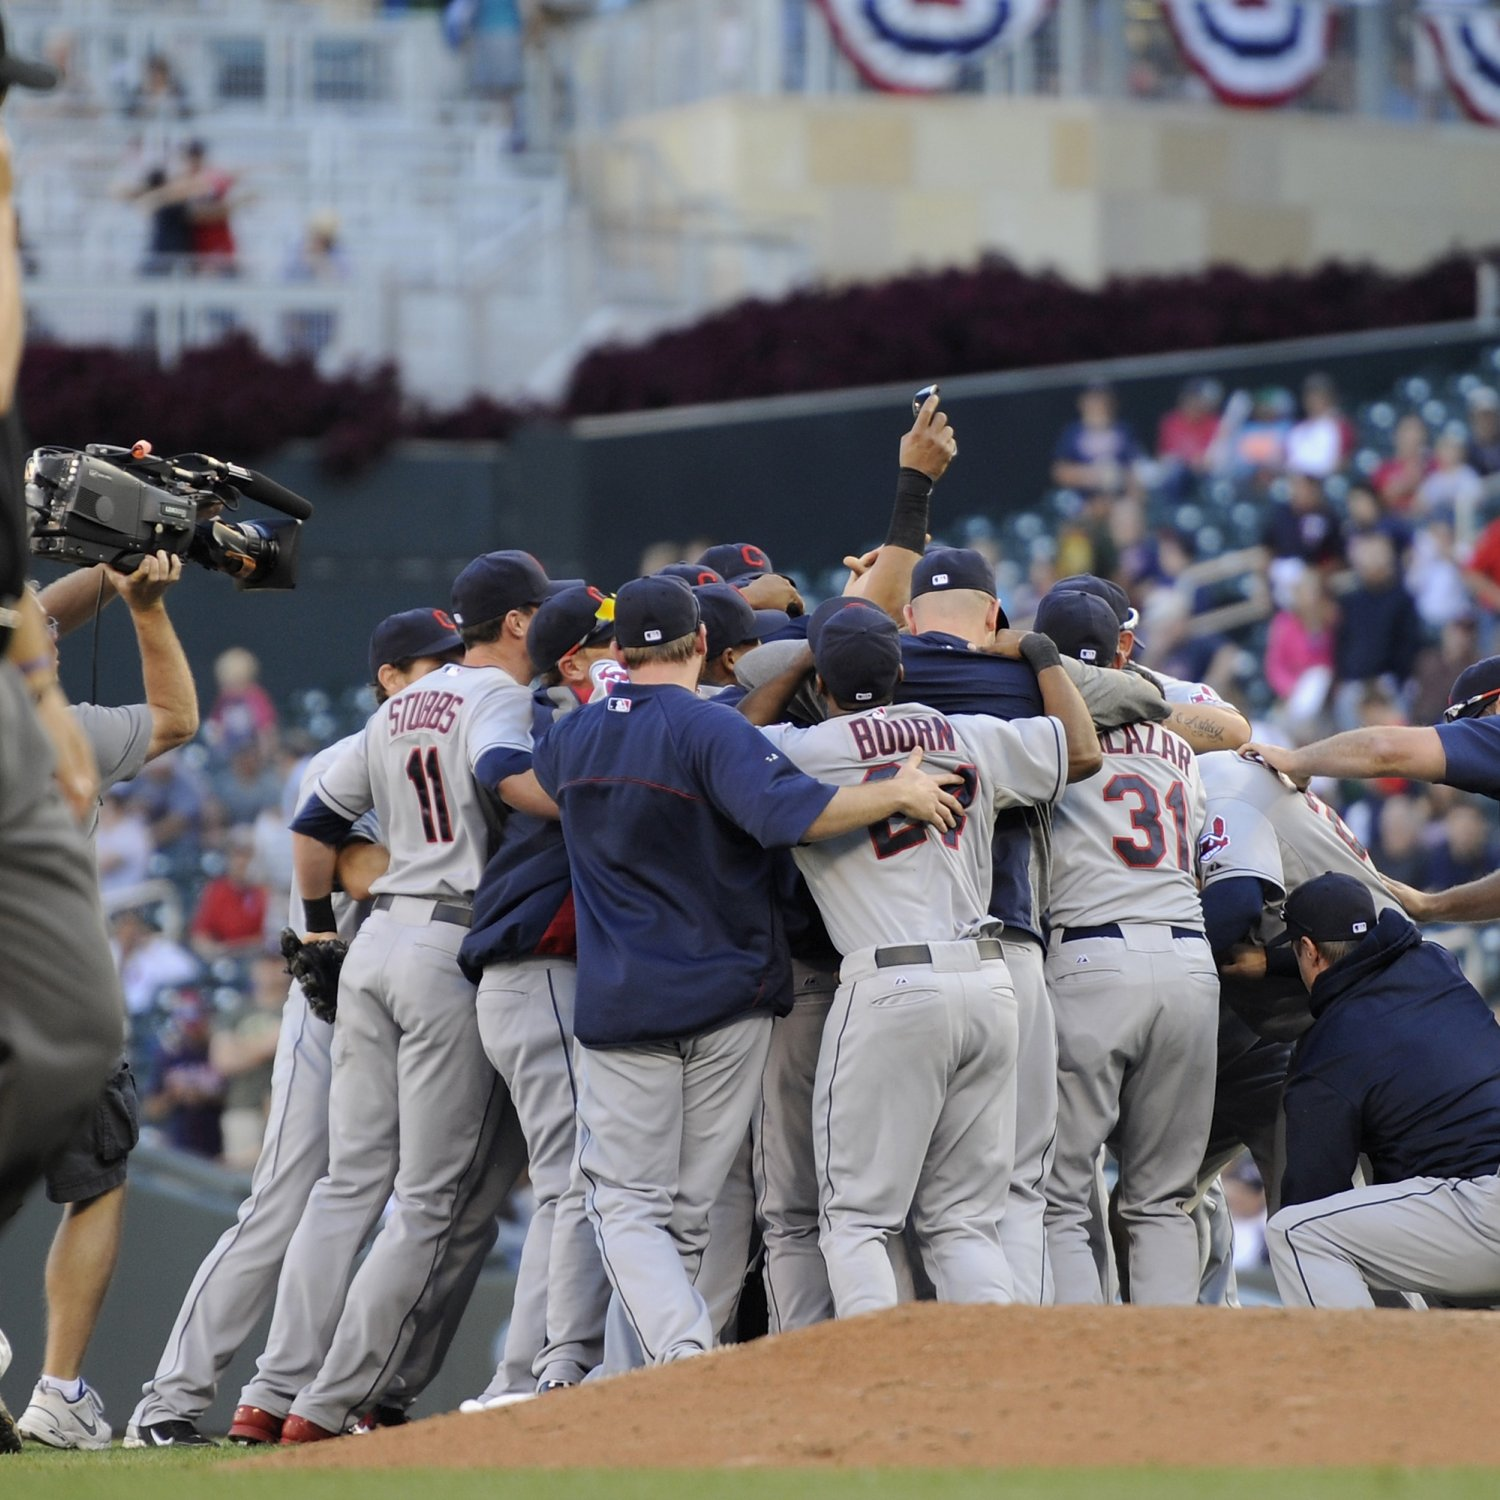 MLB Playoffs 2013: Higher Seeds That Will Not Advance